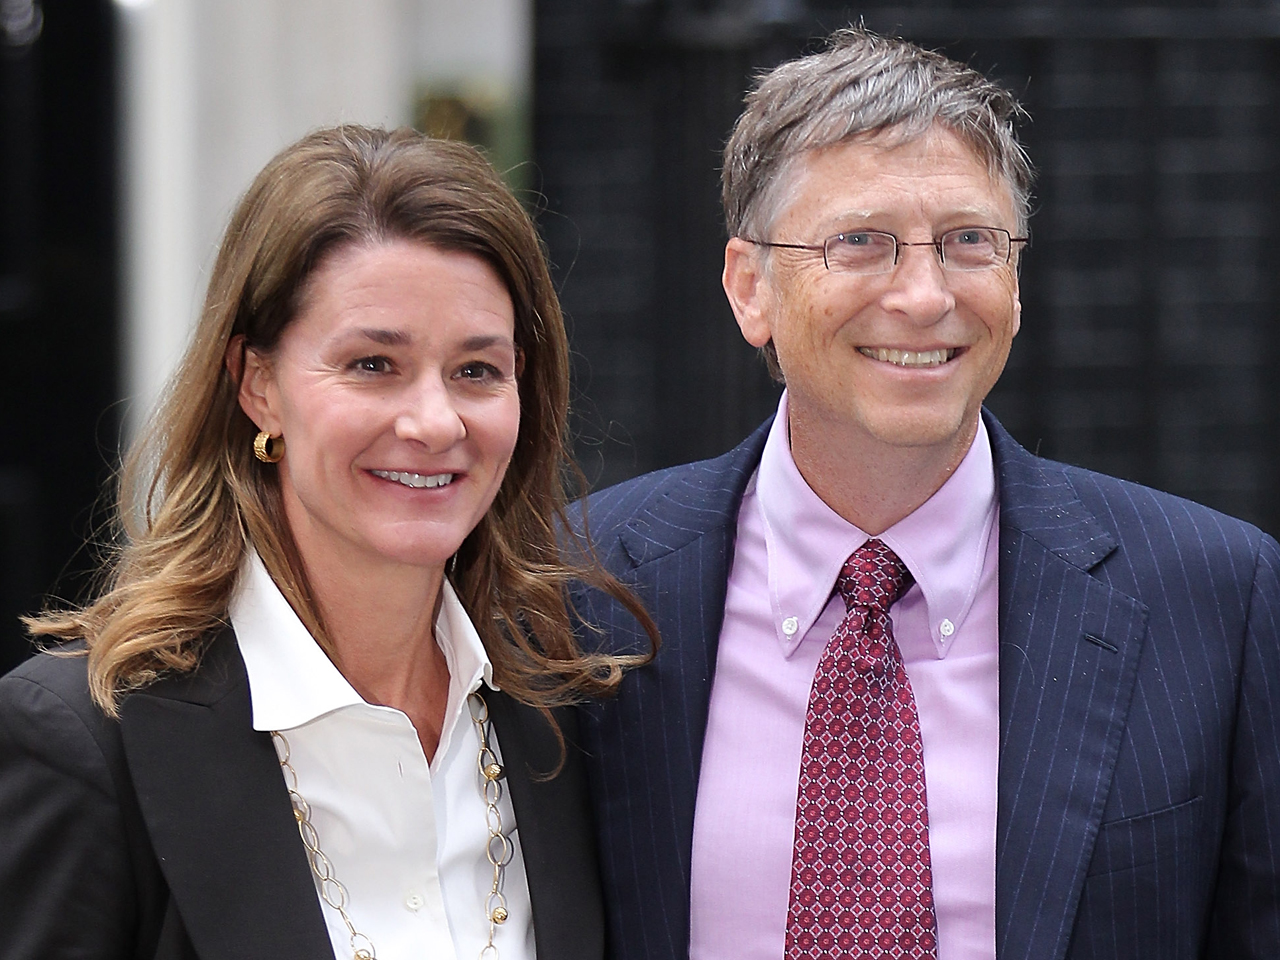 Bill Melinda Gates Foundation: Bill Gates Recalls His 'spontaneous' First Date With Wife